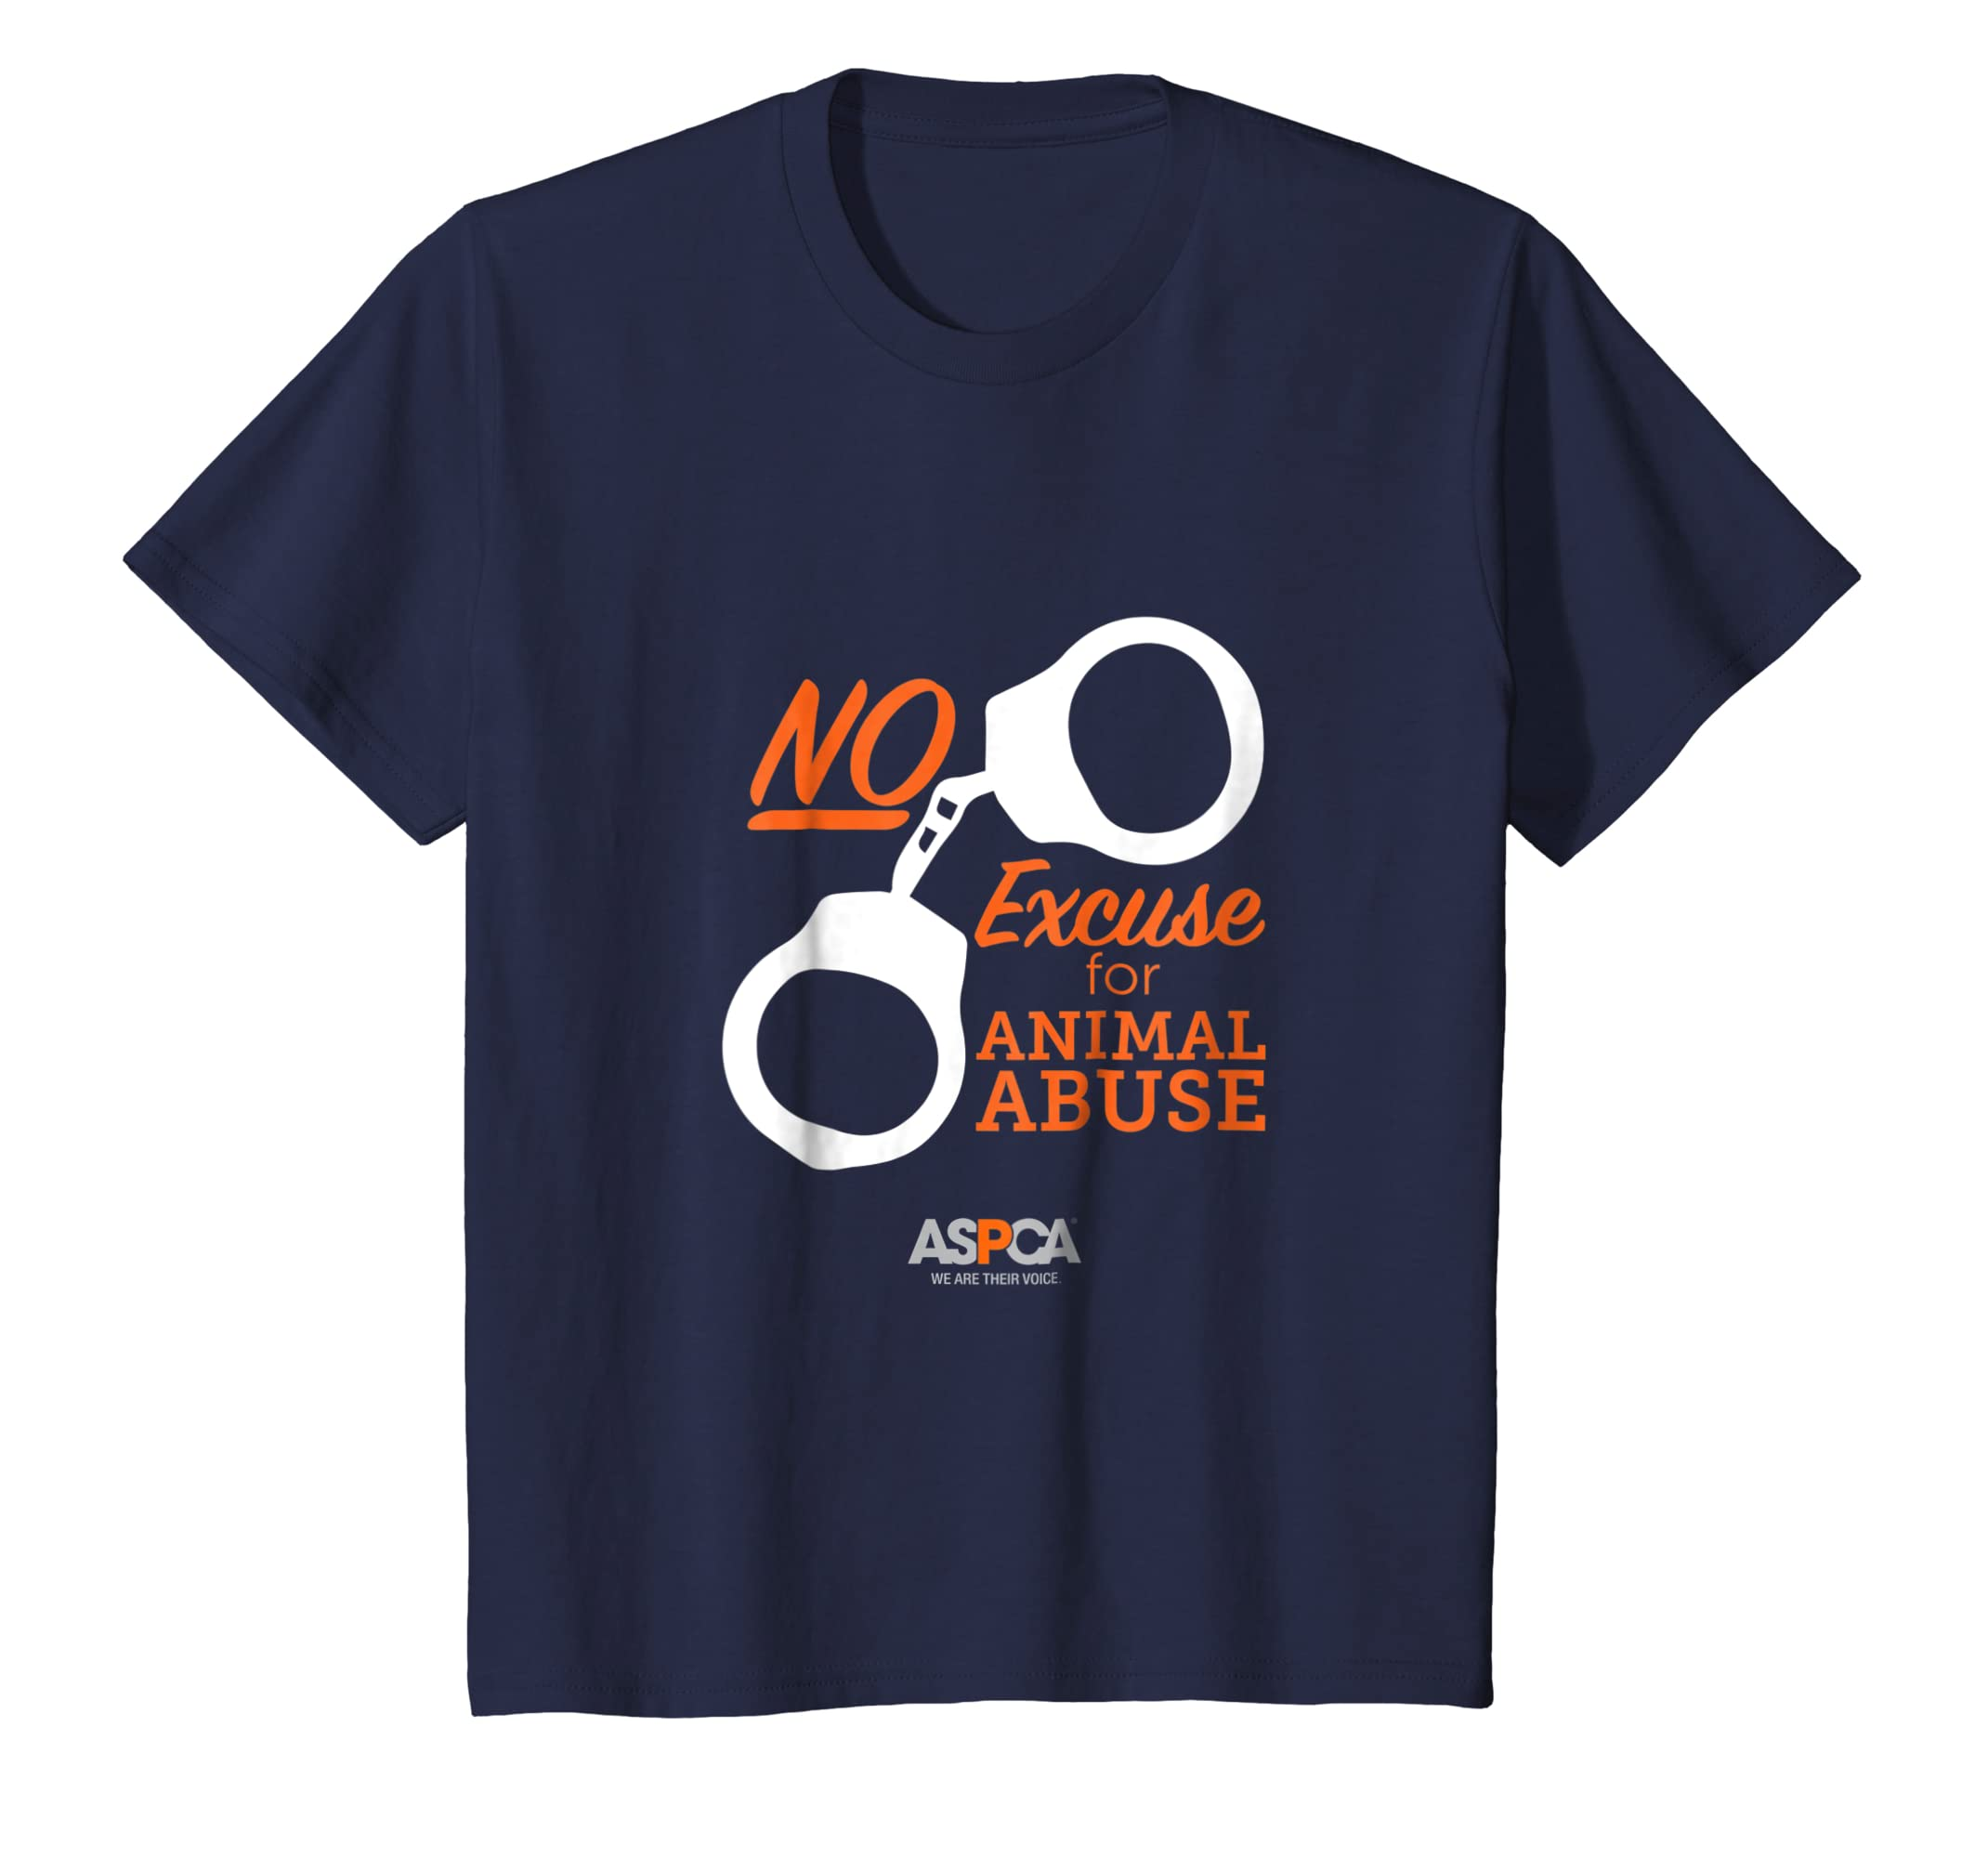 b7f9829966 Amazon.com  ASPCA No Excuse for Animal Abuse T-Shirt Dark  Clothing